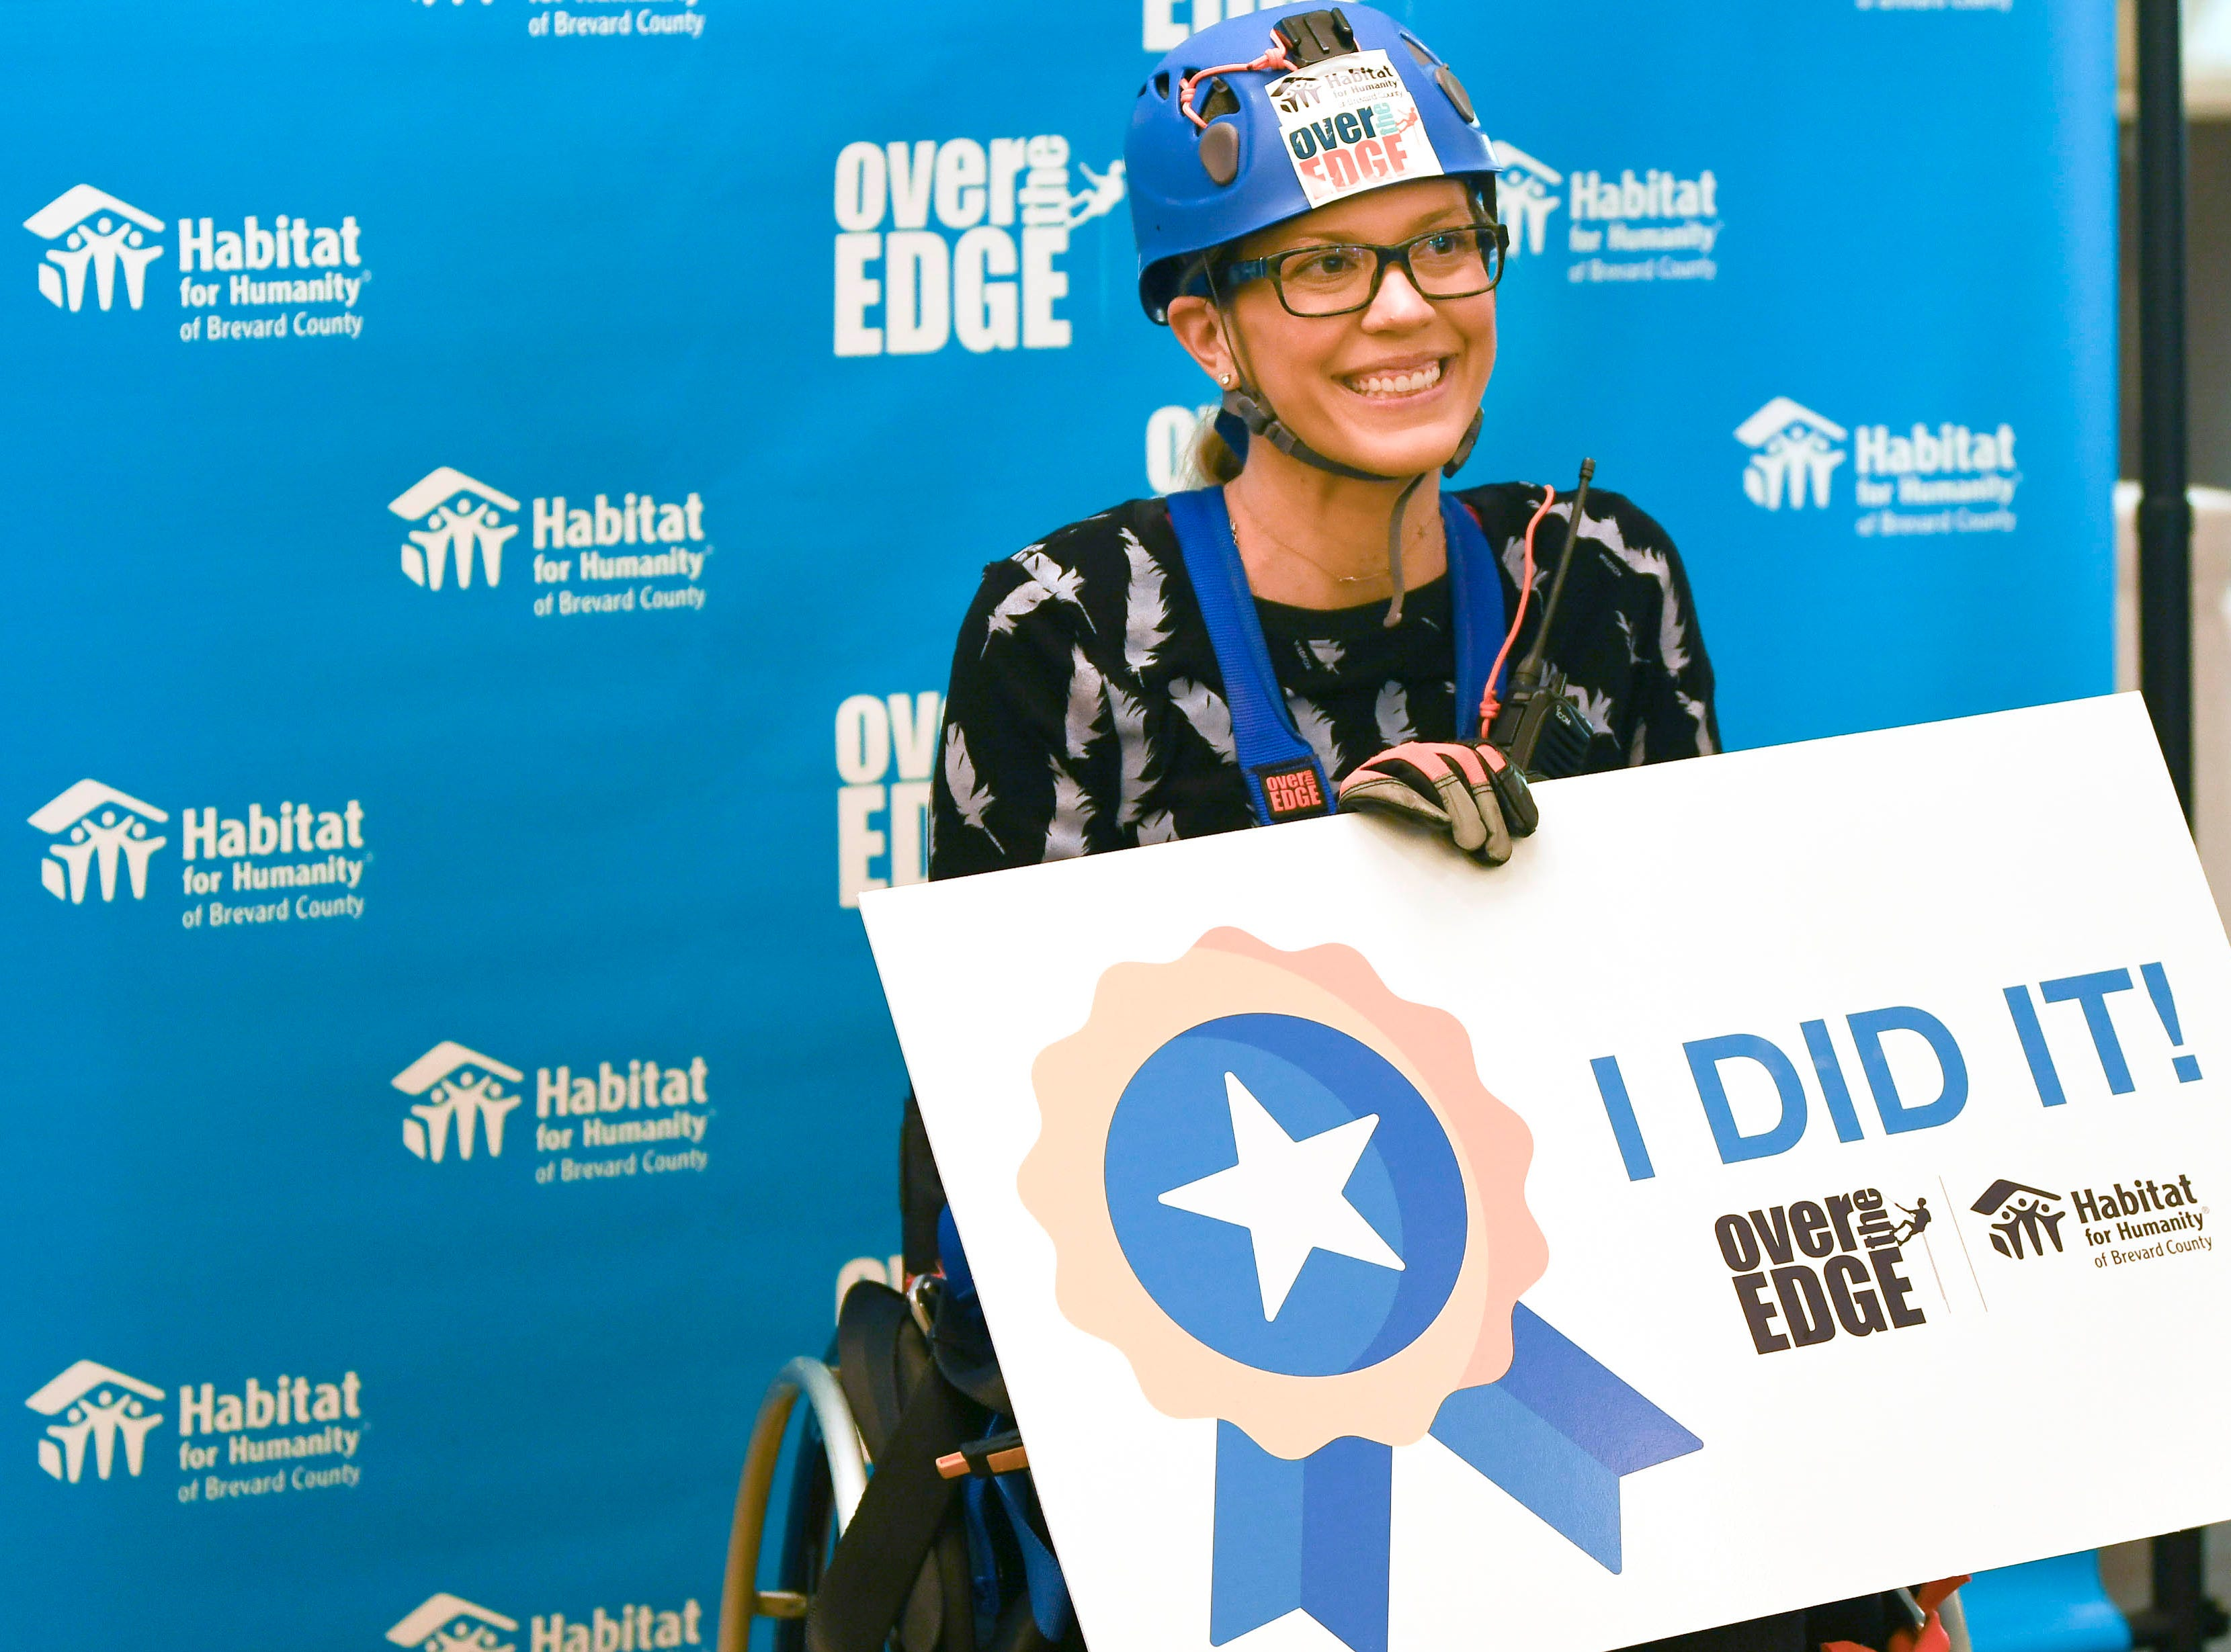 Jessica Andre goes Over the Edge at the Melbourne Rialto Hilton on Saturday morning. Over the Edge is a fundraiser for Habitat Humanity of Brevard, an organization that helps low-income families buy affordable houses. Teams and individuals raised money for the chance to rappel eight stories down the Hilton.